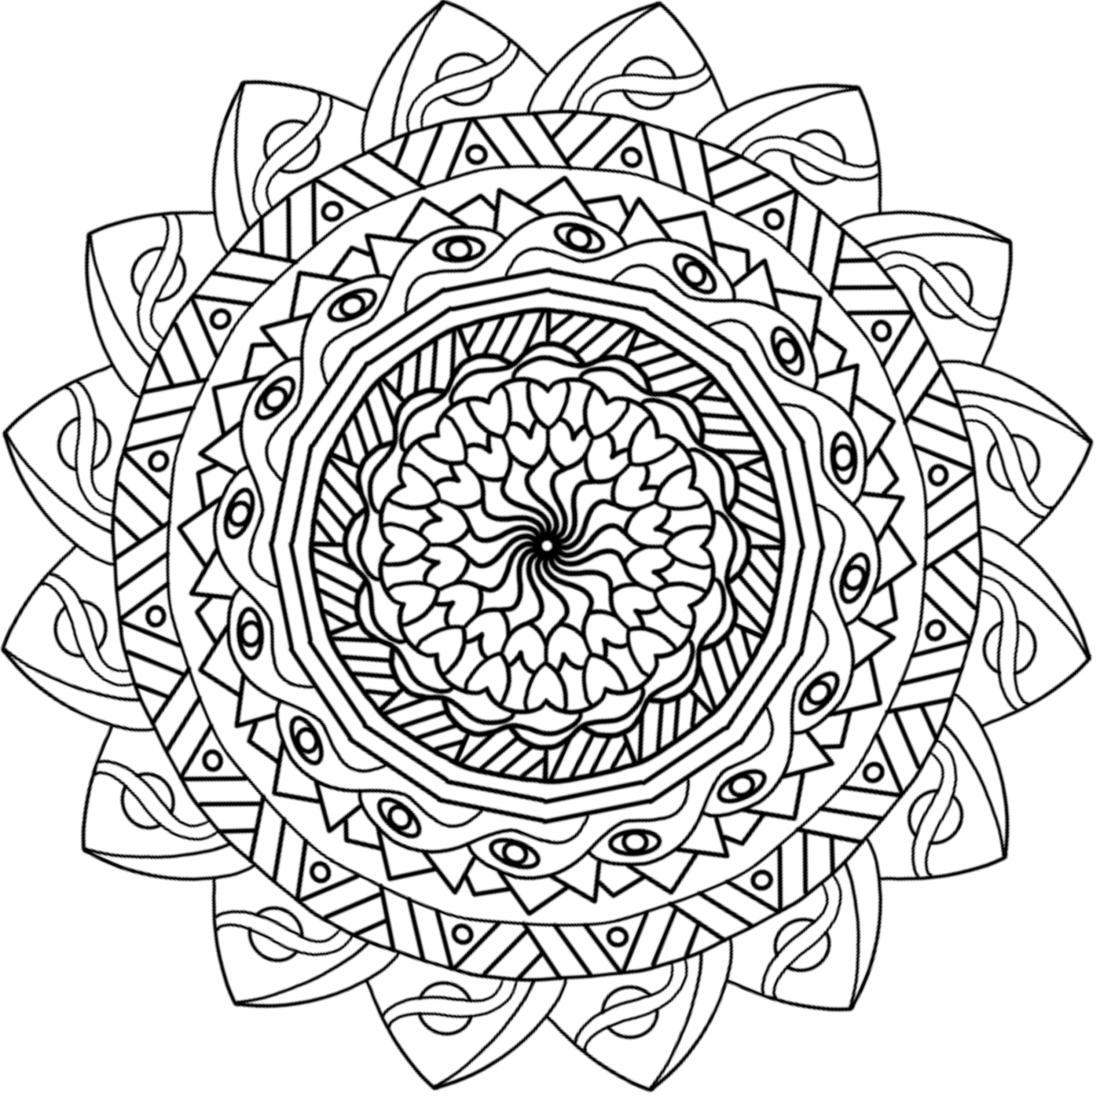 Picture of Starling Sweet coloring page